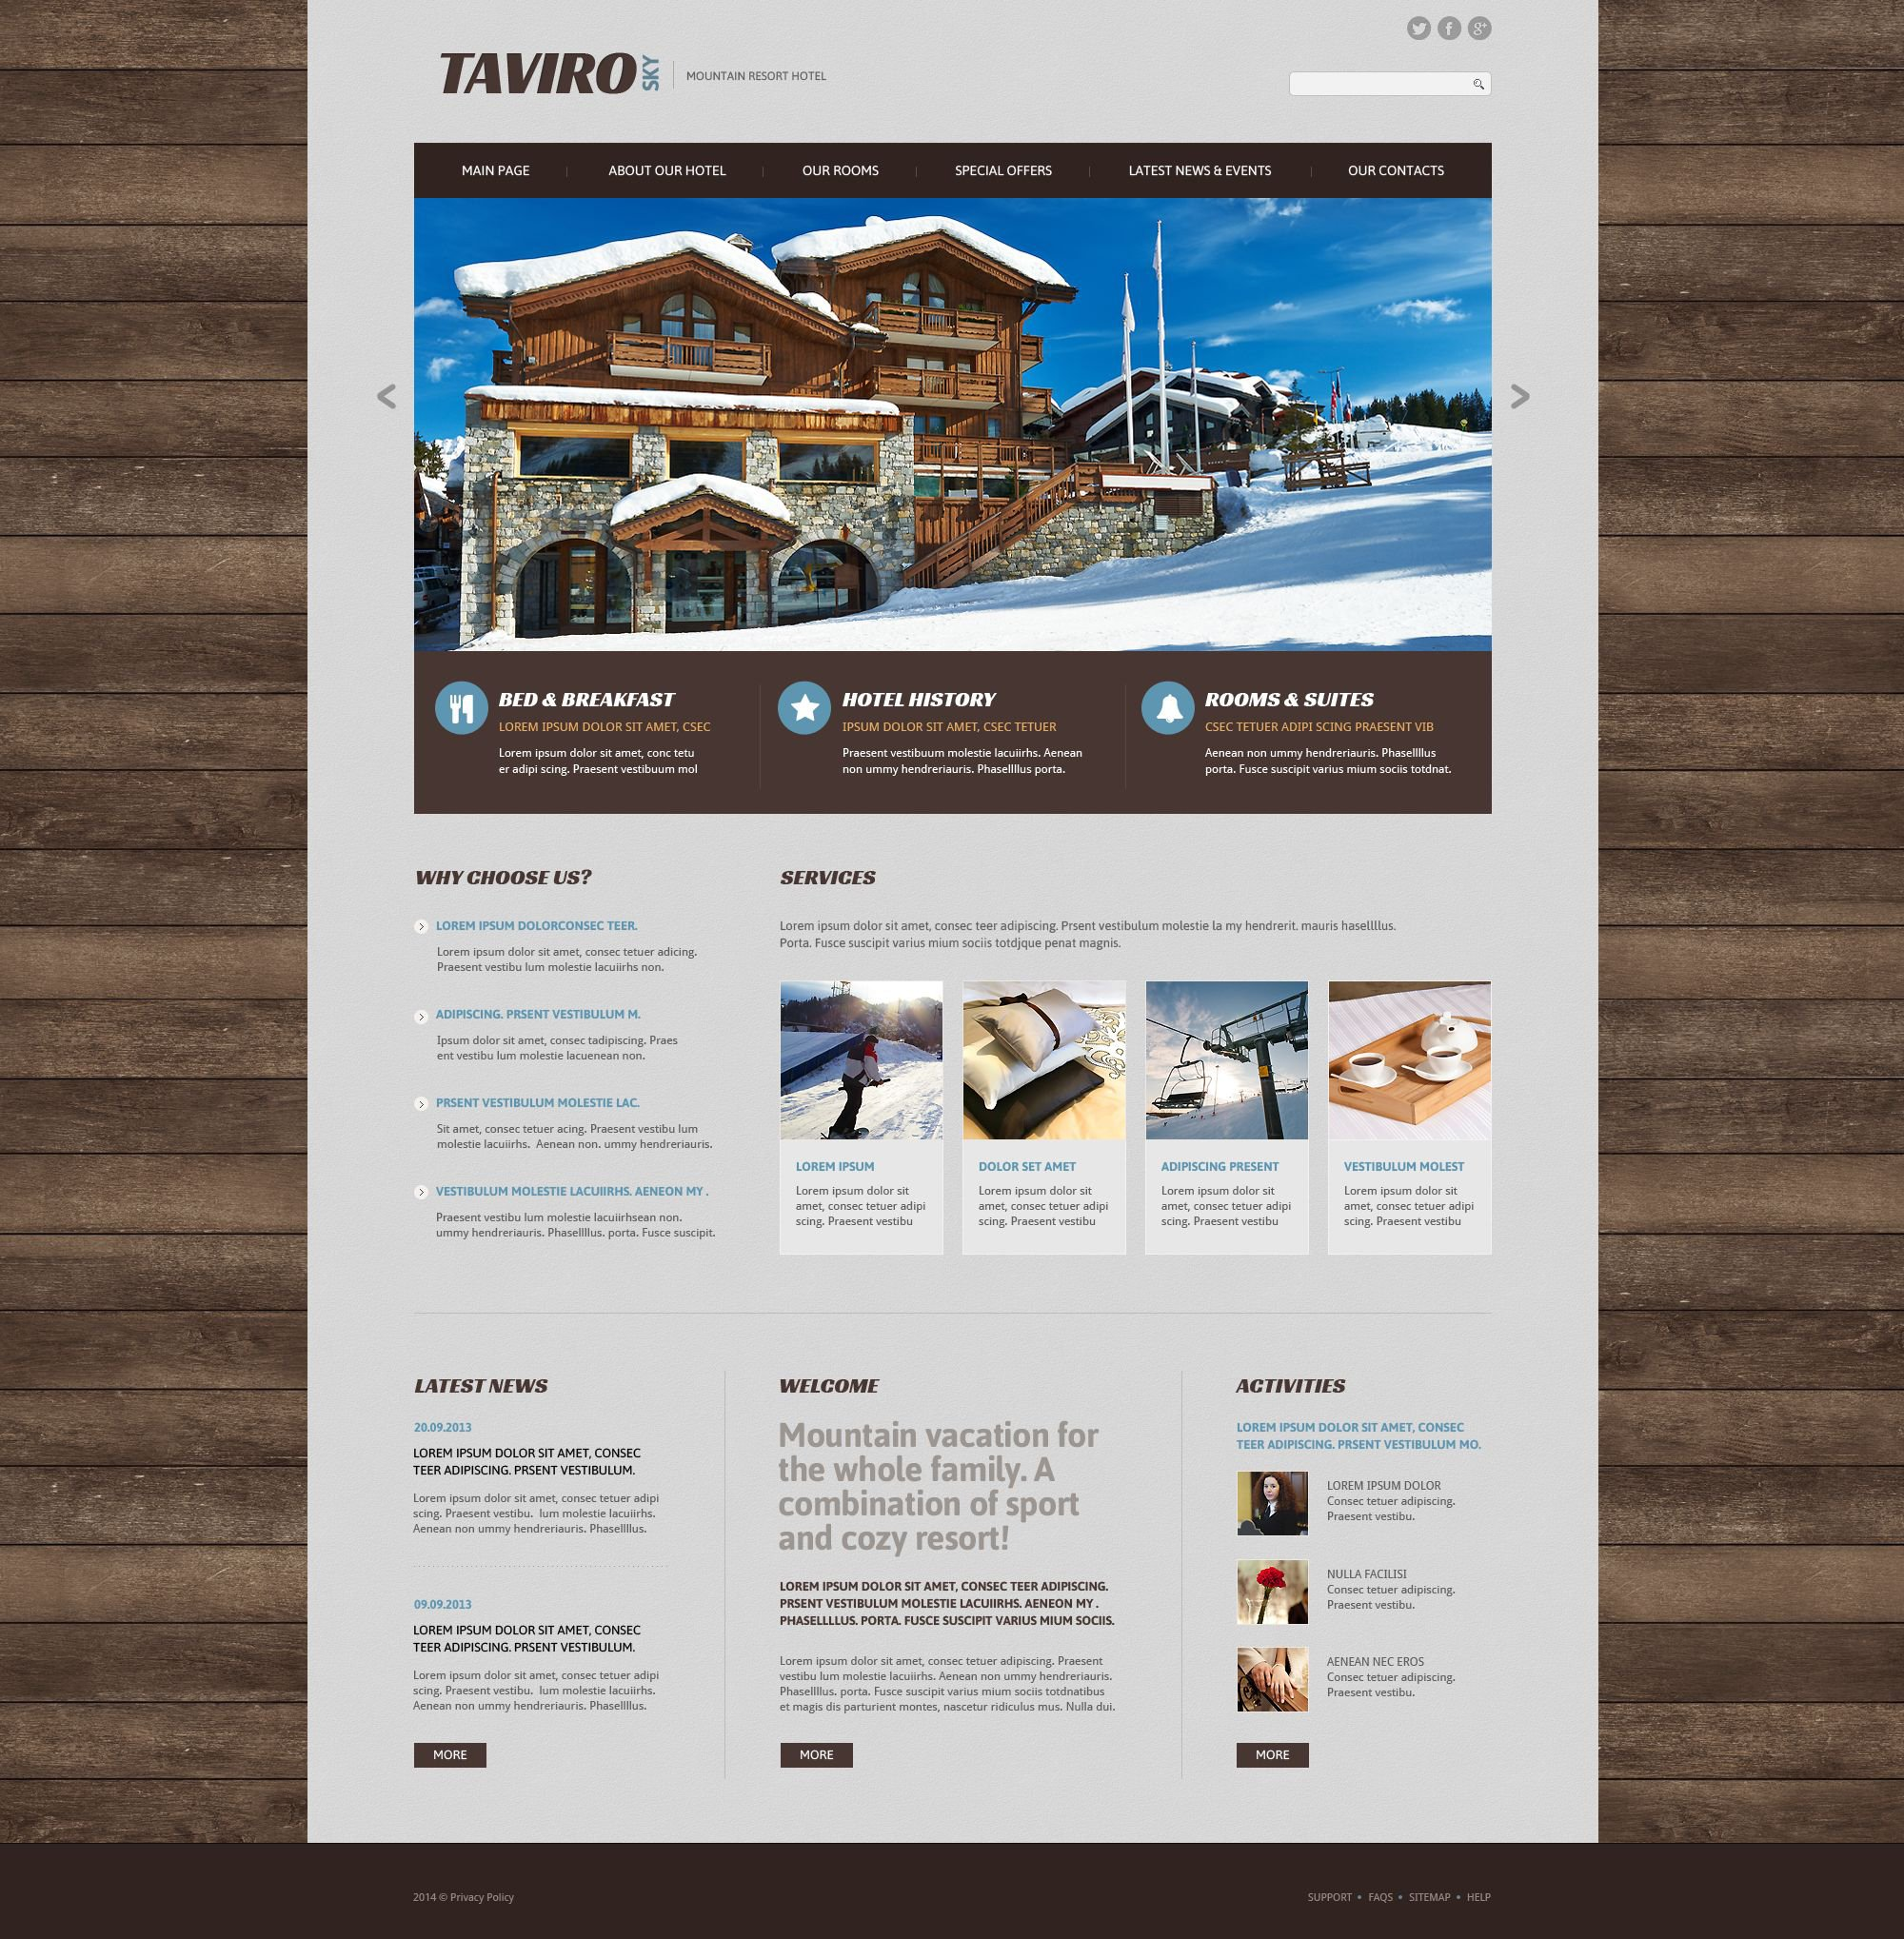 The Taviro Ski Dream Hotel Hotel Responsive Javascript Animated Design 53471, one of the best website templates of its kind (hotels, most popular), also known as taviro Ski Dream Hotel hotel website template, motel website template, template website template, building website template, events website template, interior website template, cozy website template, comfortable room website template, spacious website template, light website template, modern rest website template, pool website template, floor website template, stairs website template, staff website template, reception website template, testimonial website template, service website template, offer website template, booking website template, reservation website template, order website template, location website template, security website template, wedding website template, cerem and related with taviro Ski Dream Hotel hotel, motel, template, building, events, interior, cozy, comfortable room, spacious, light, modern rest, pool, floor, stairs, staff, reception, testimonial, service, offer, booking, reservation, order, location, security, wedding, cerem, etc.